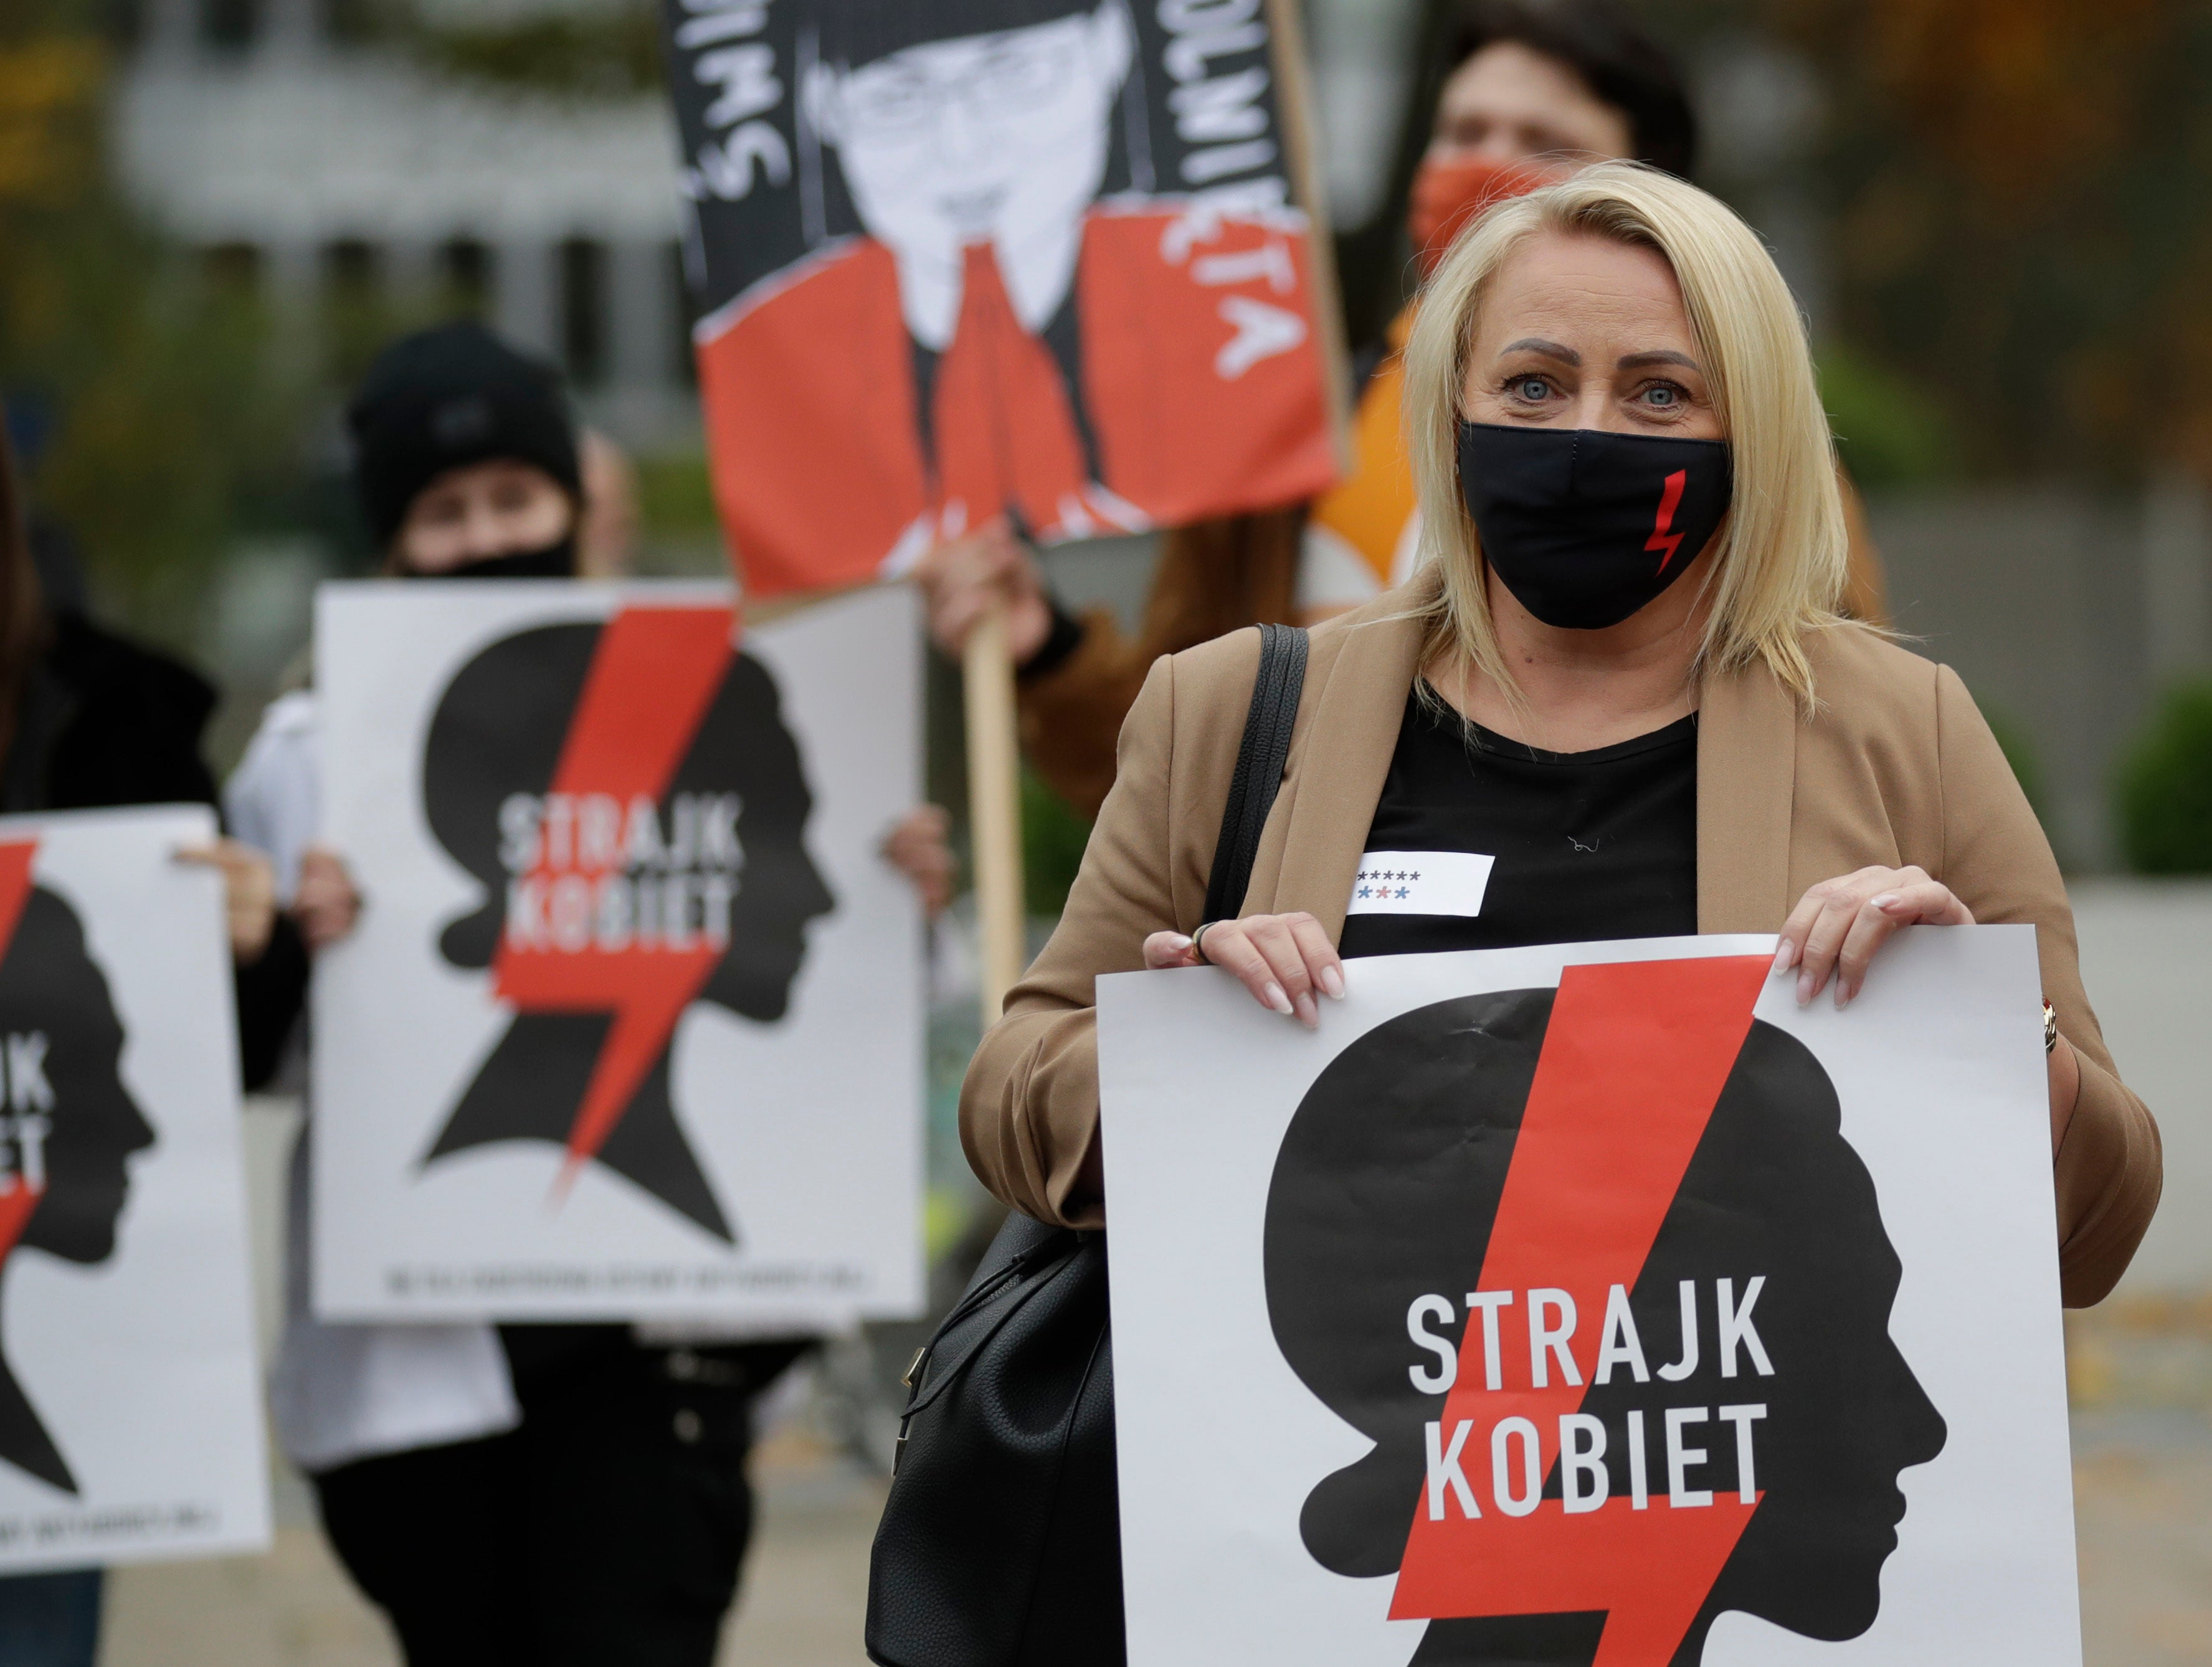 Poland abortion law: Nationwide strike launched after court ruling - independent